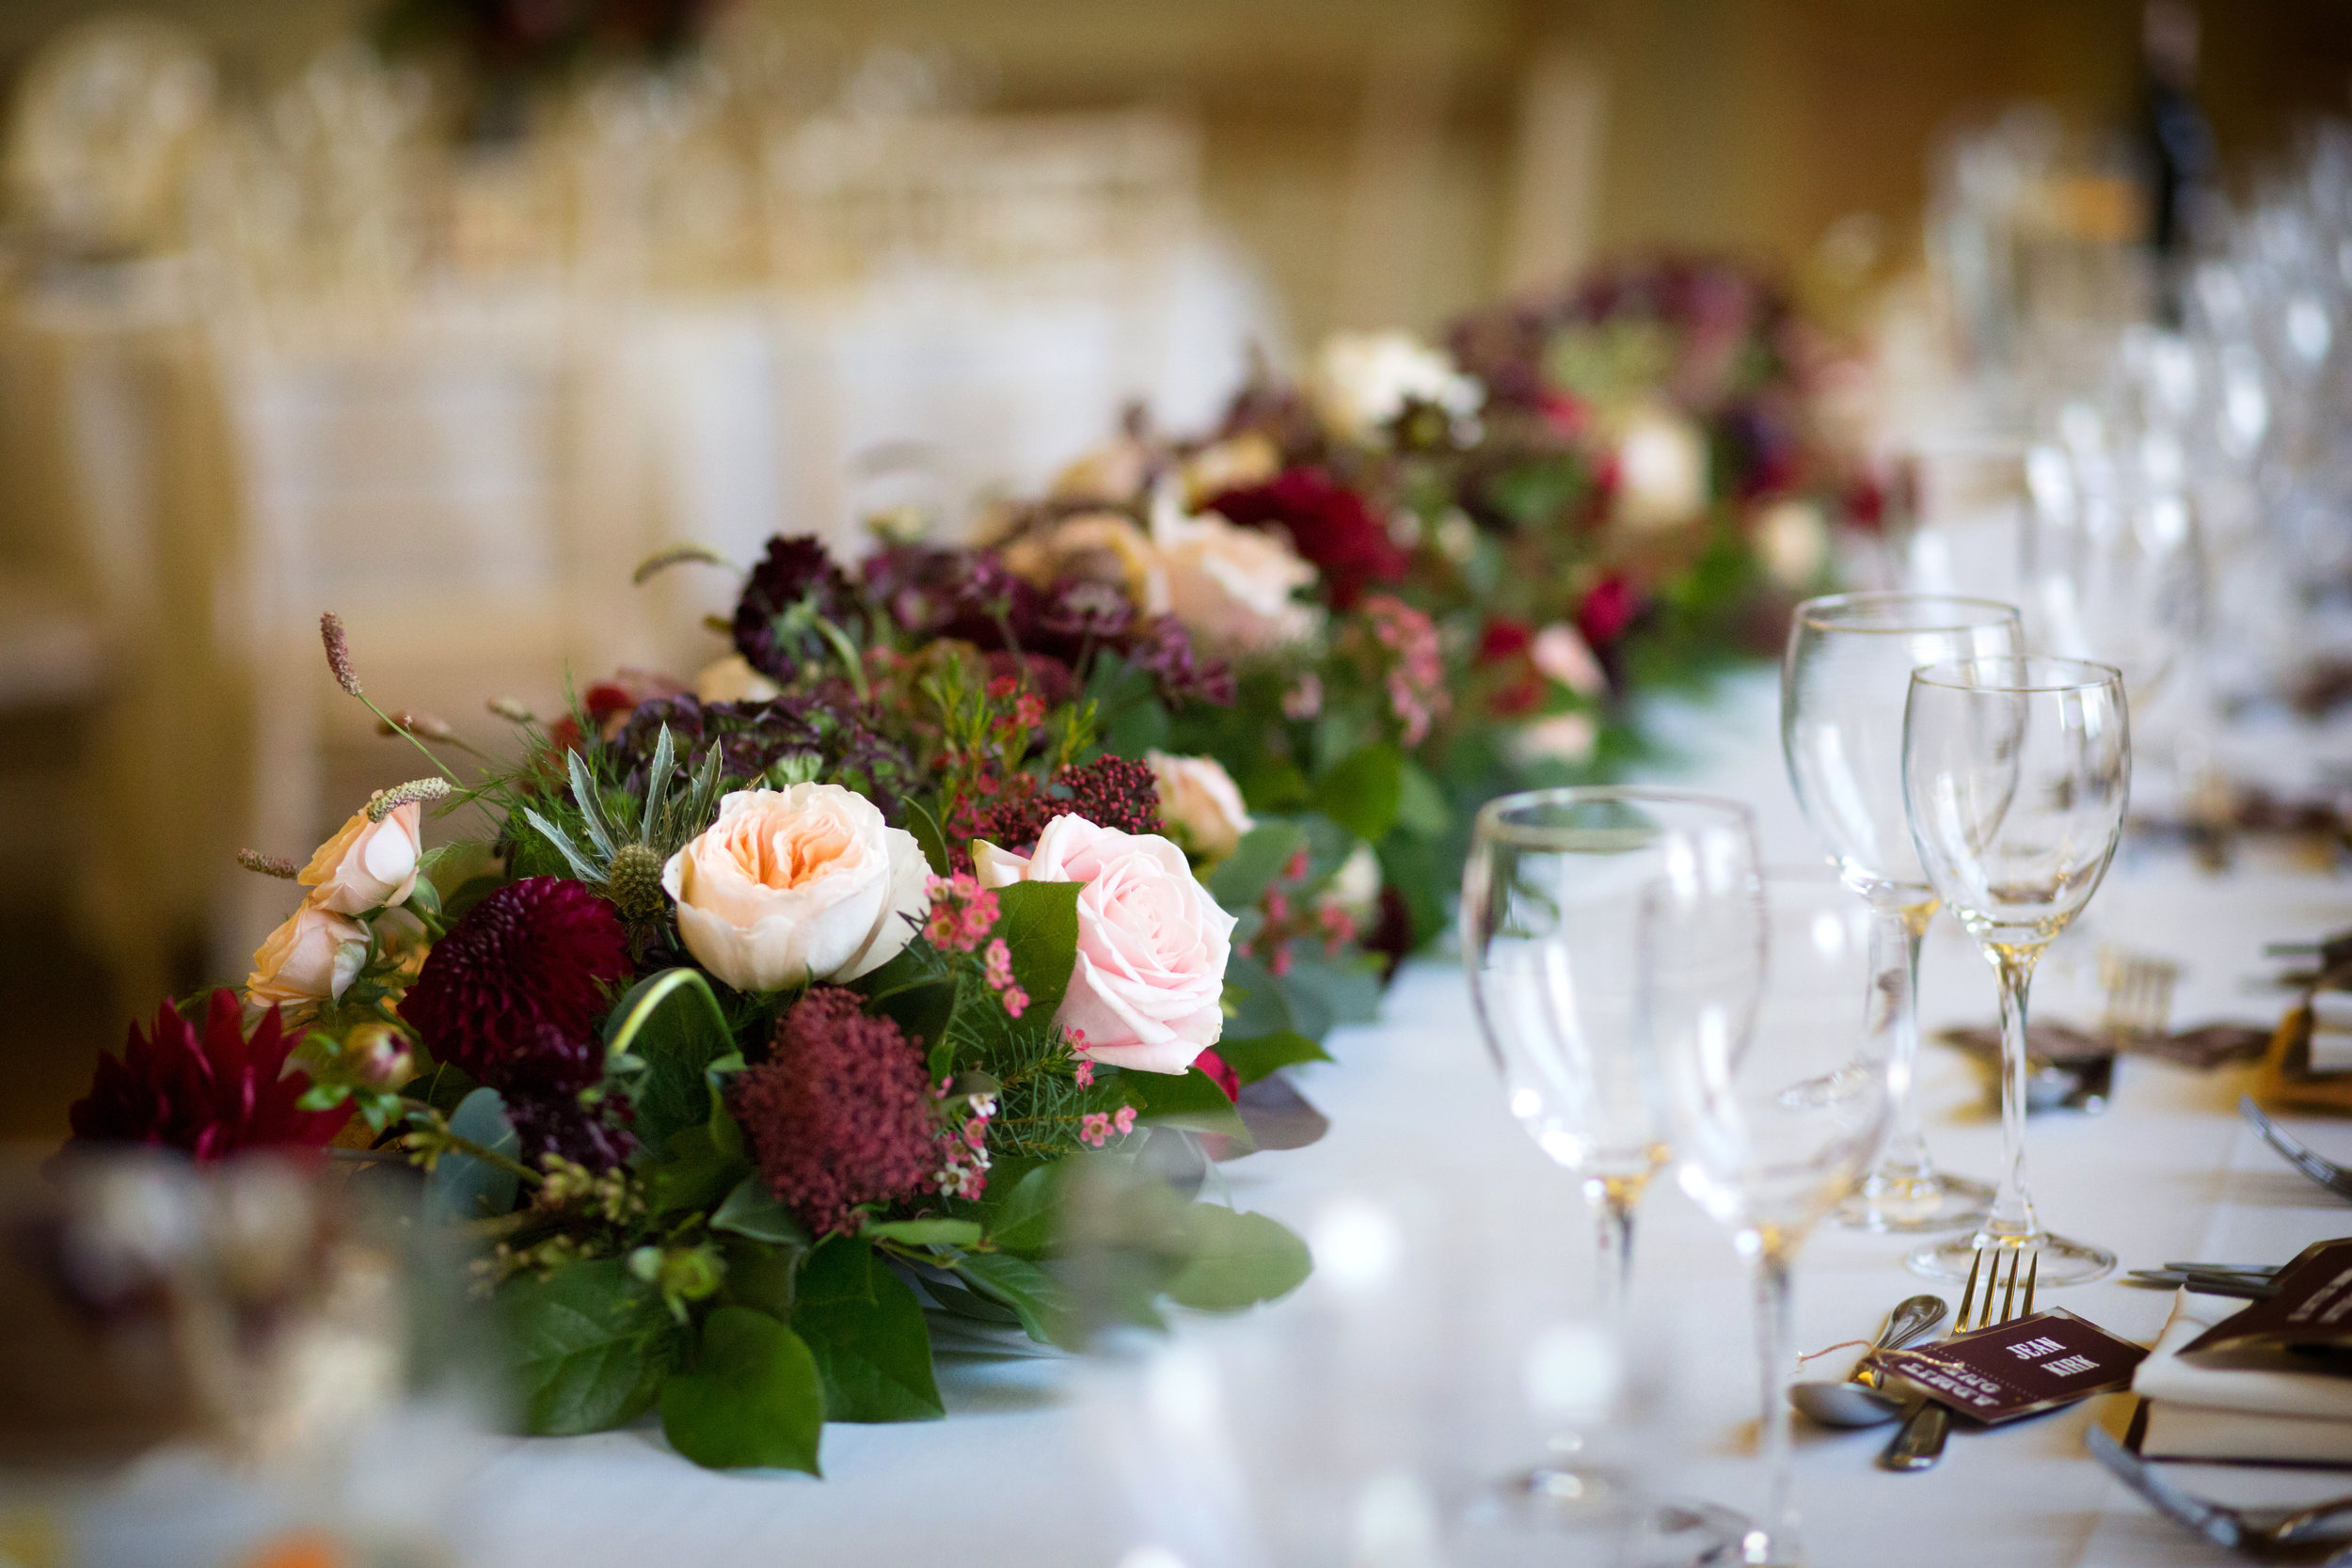 Autumn top table runner at Stowe House, Buckinghamshire